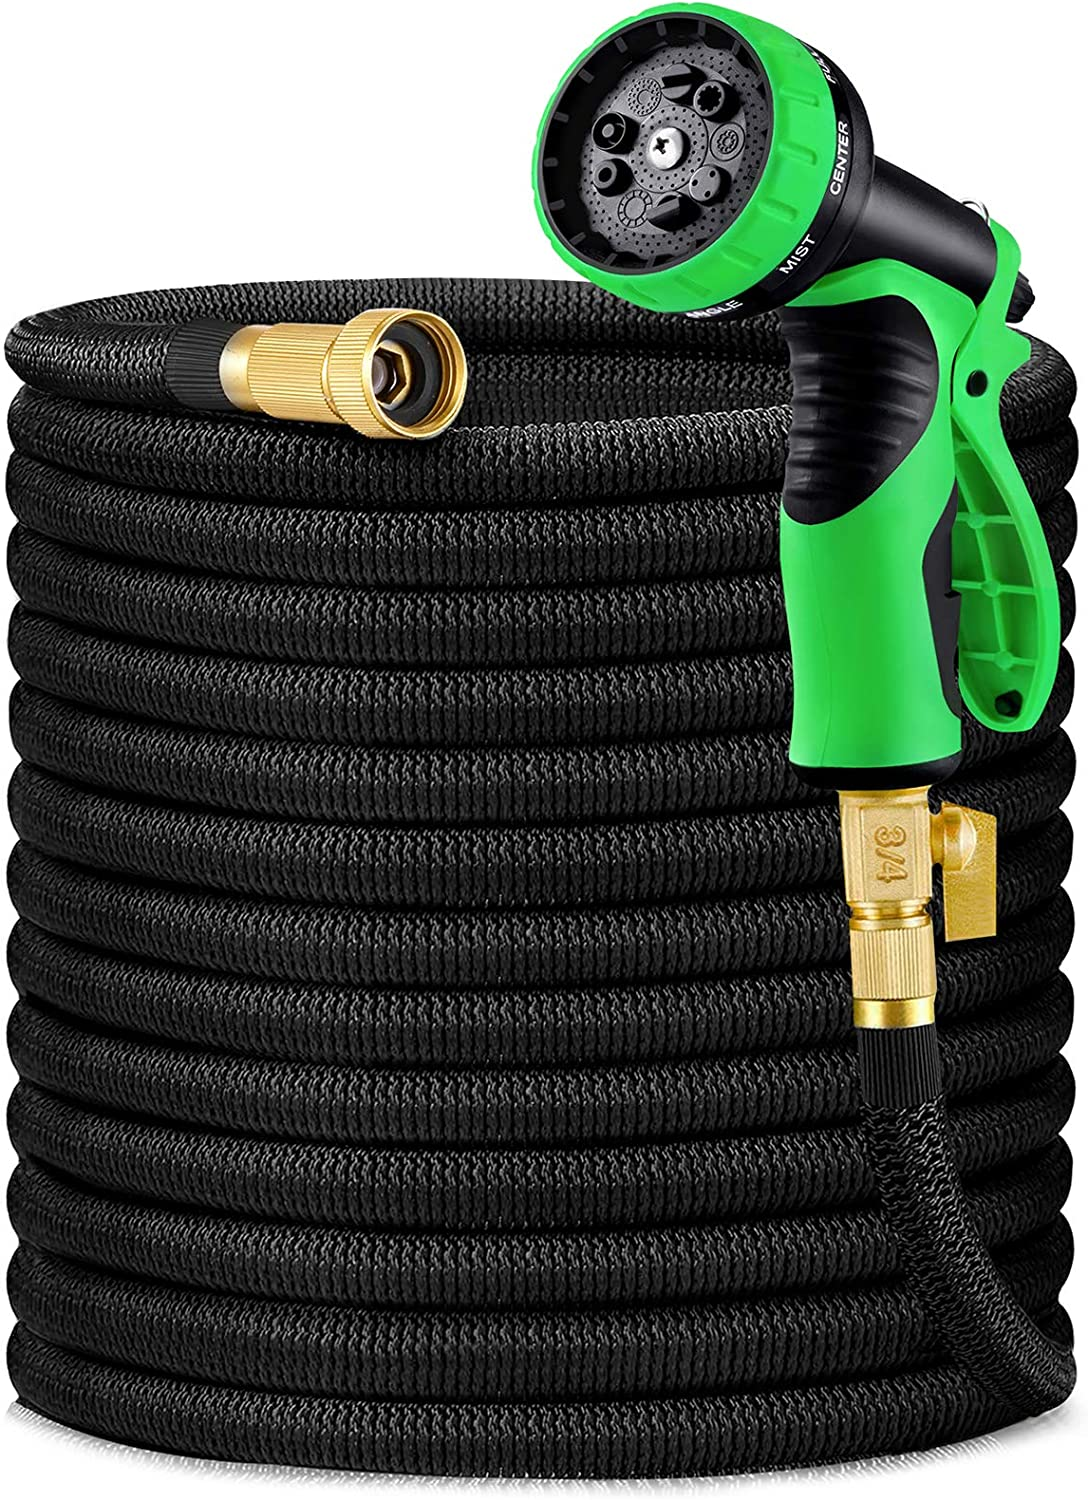 HBlife 100ft Garden Hose, Expandable Water Hose with 3/4